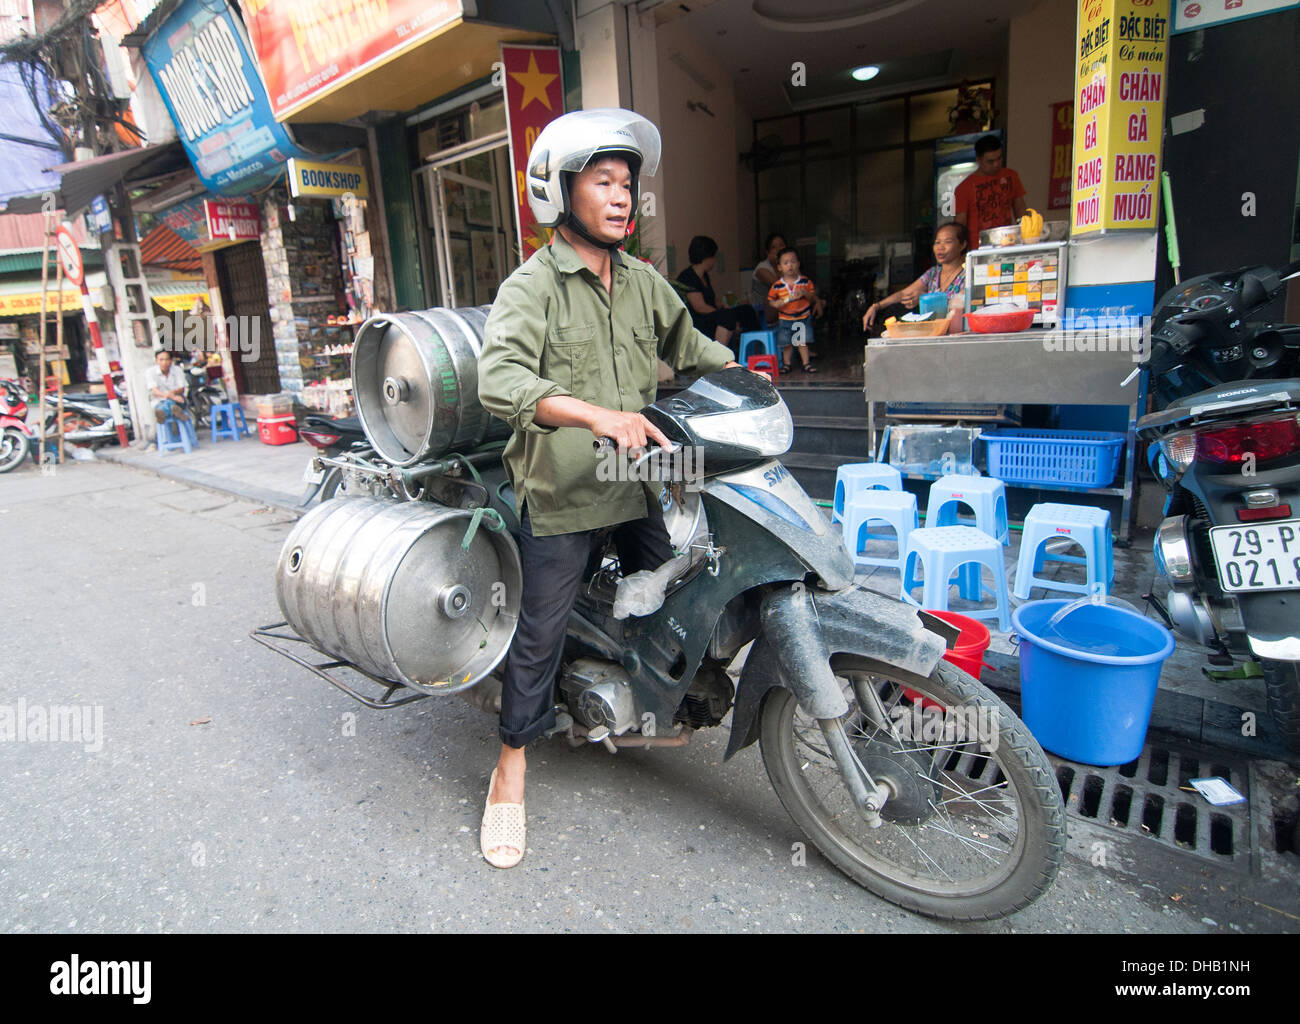 Bia Hoi draft beer delivery to the old quarter in Hanoi. - Stock Image